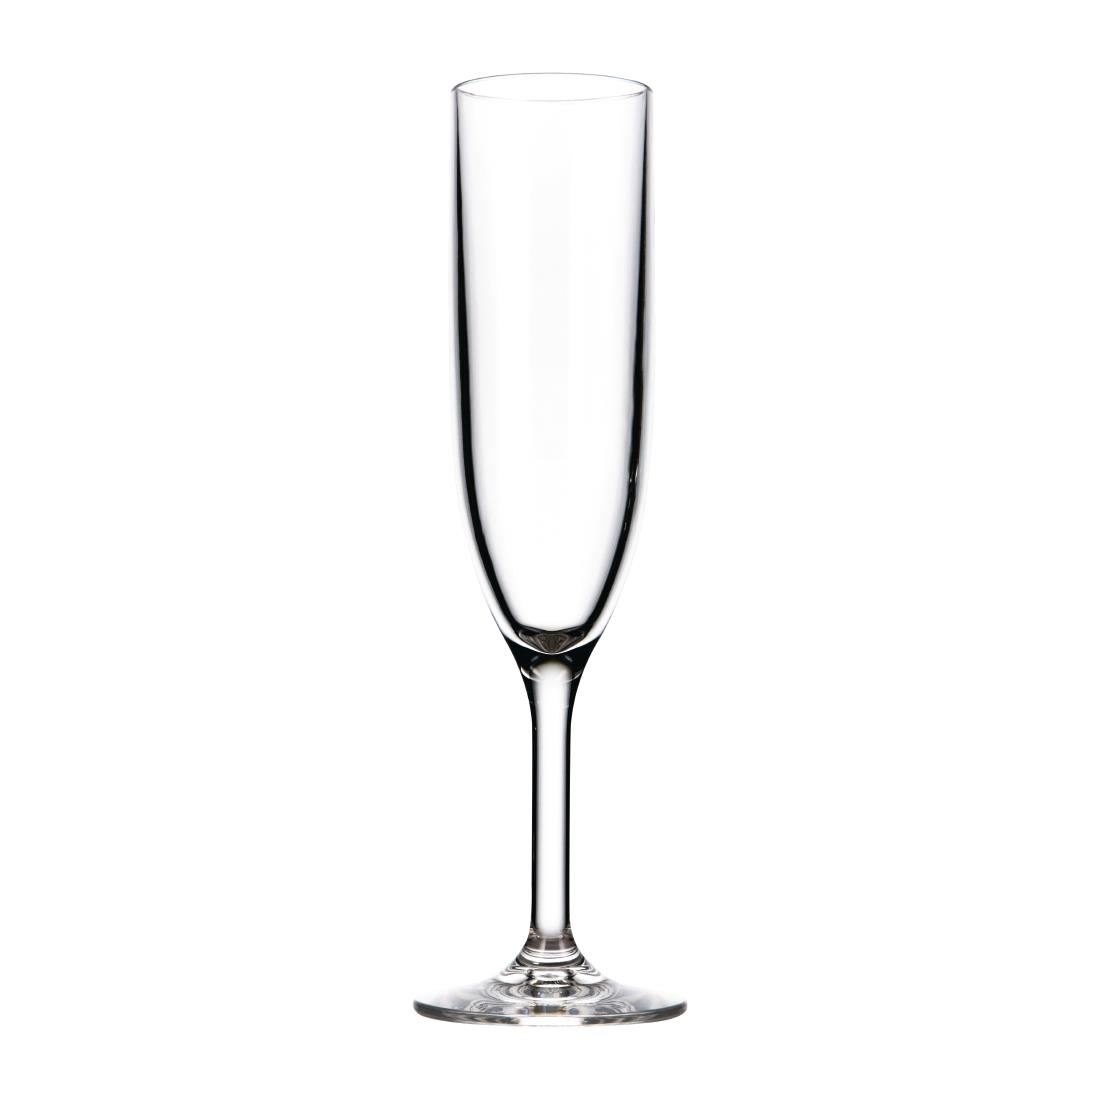 Image of Drinique Elite Tritan Champagne Flutes Clear 170ml (Pack of 24) Pack of 24